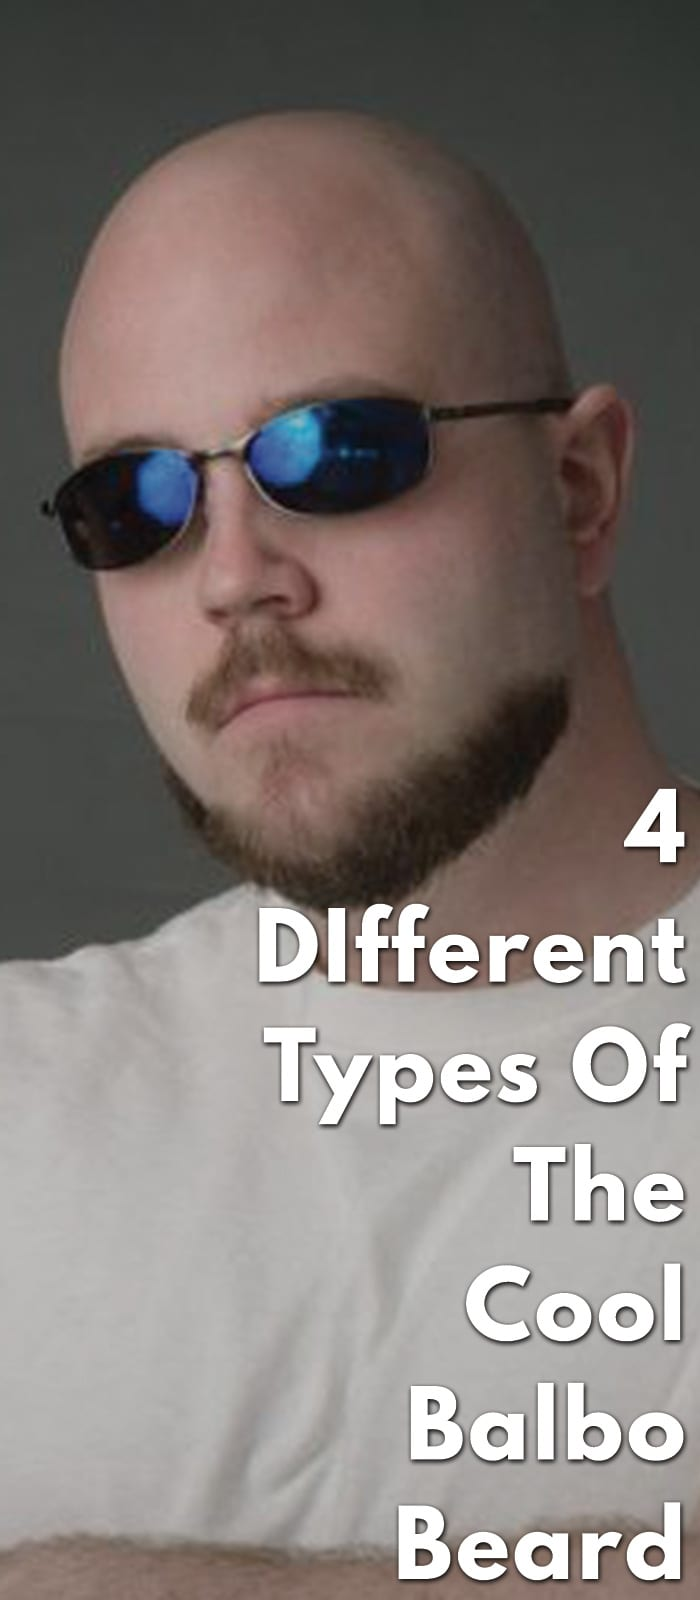 4-DIfferent-Types-Of-The-Cool-Balbo-Beard